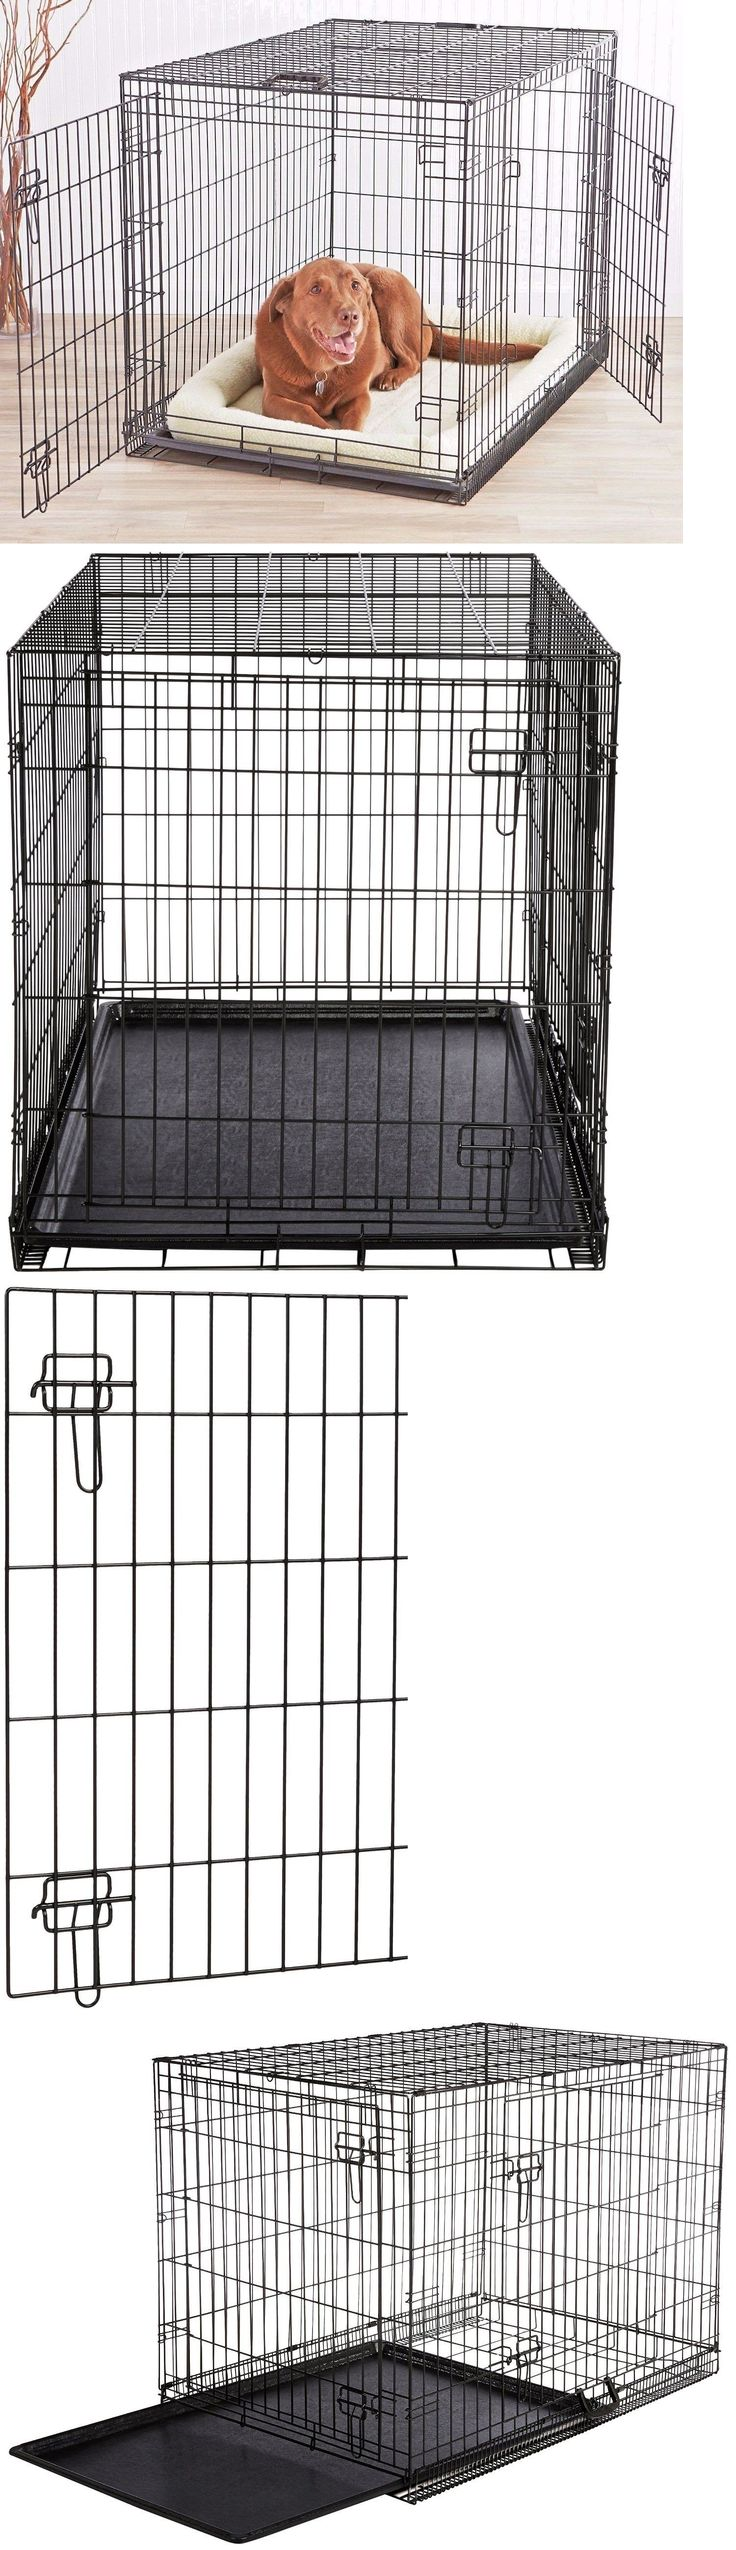 Cages and Crates 121851: Xxl Dog Crate Chain Link Dog Kennel Outdoor Pet Big Dog Cage Extra Large Metal BUY IT NOW ONLY: $79.99